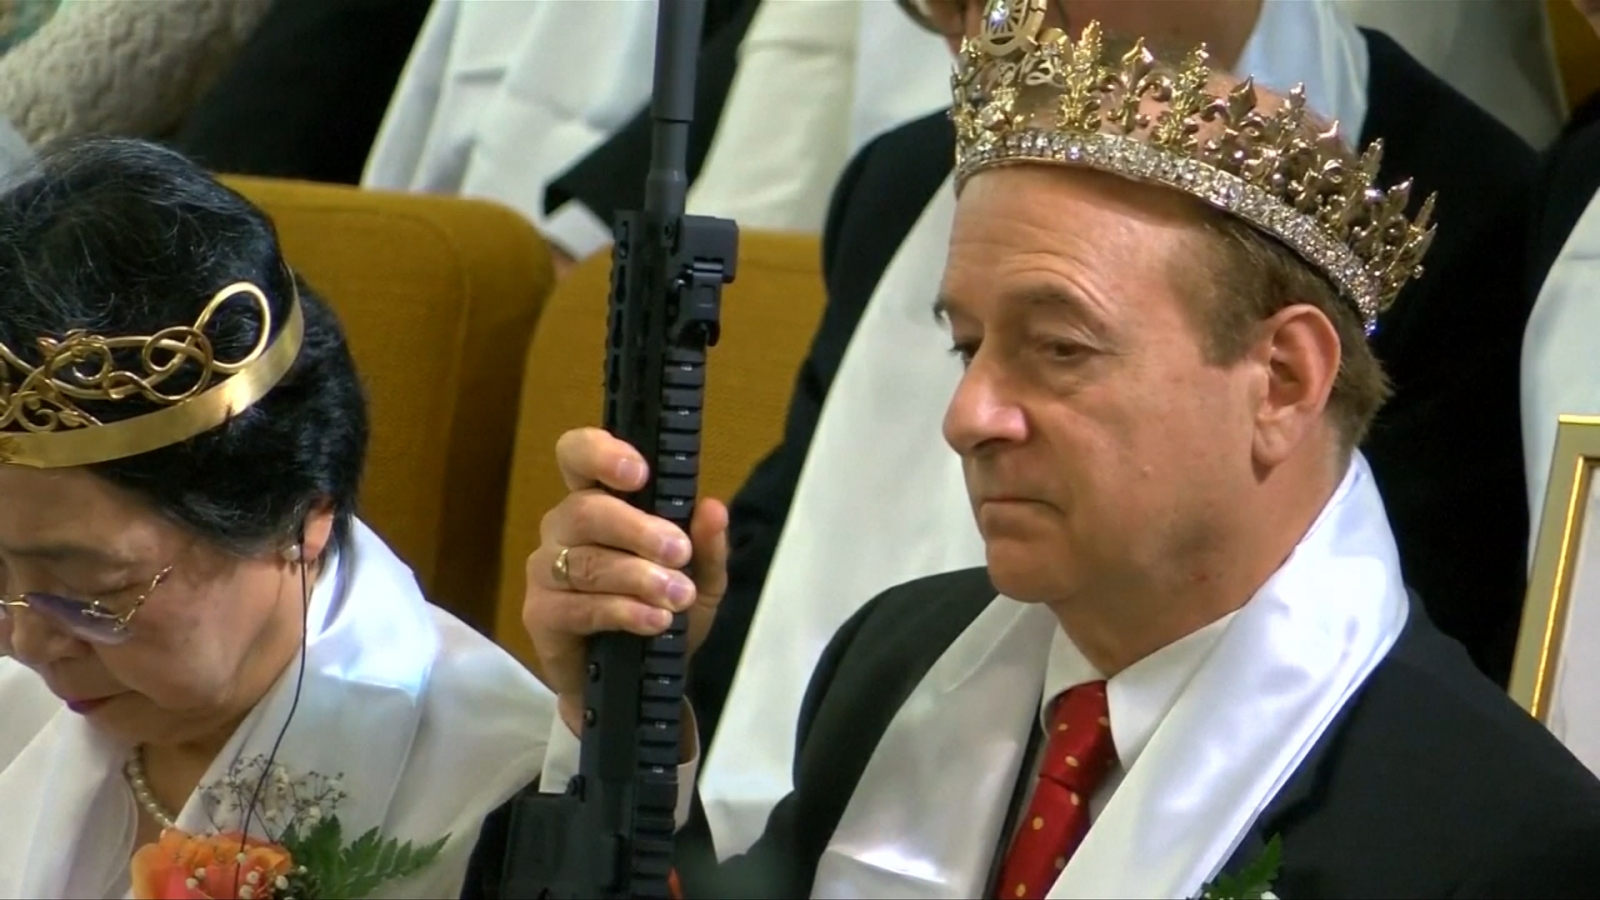 couples-take-their-ar-15-rifles-to-pennsylvania-church-for-blessing